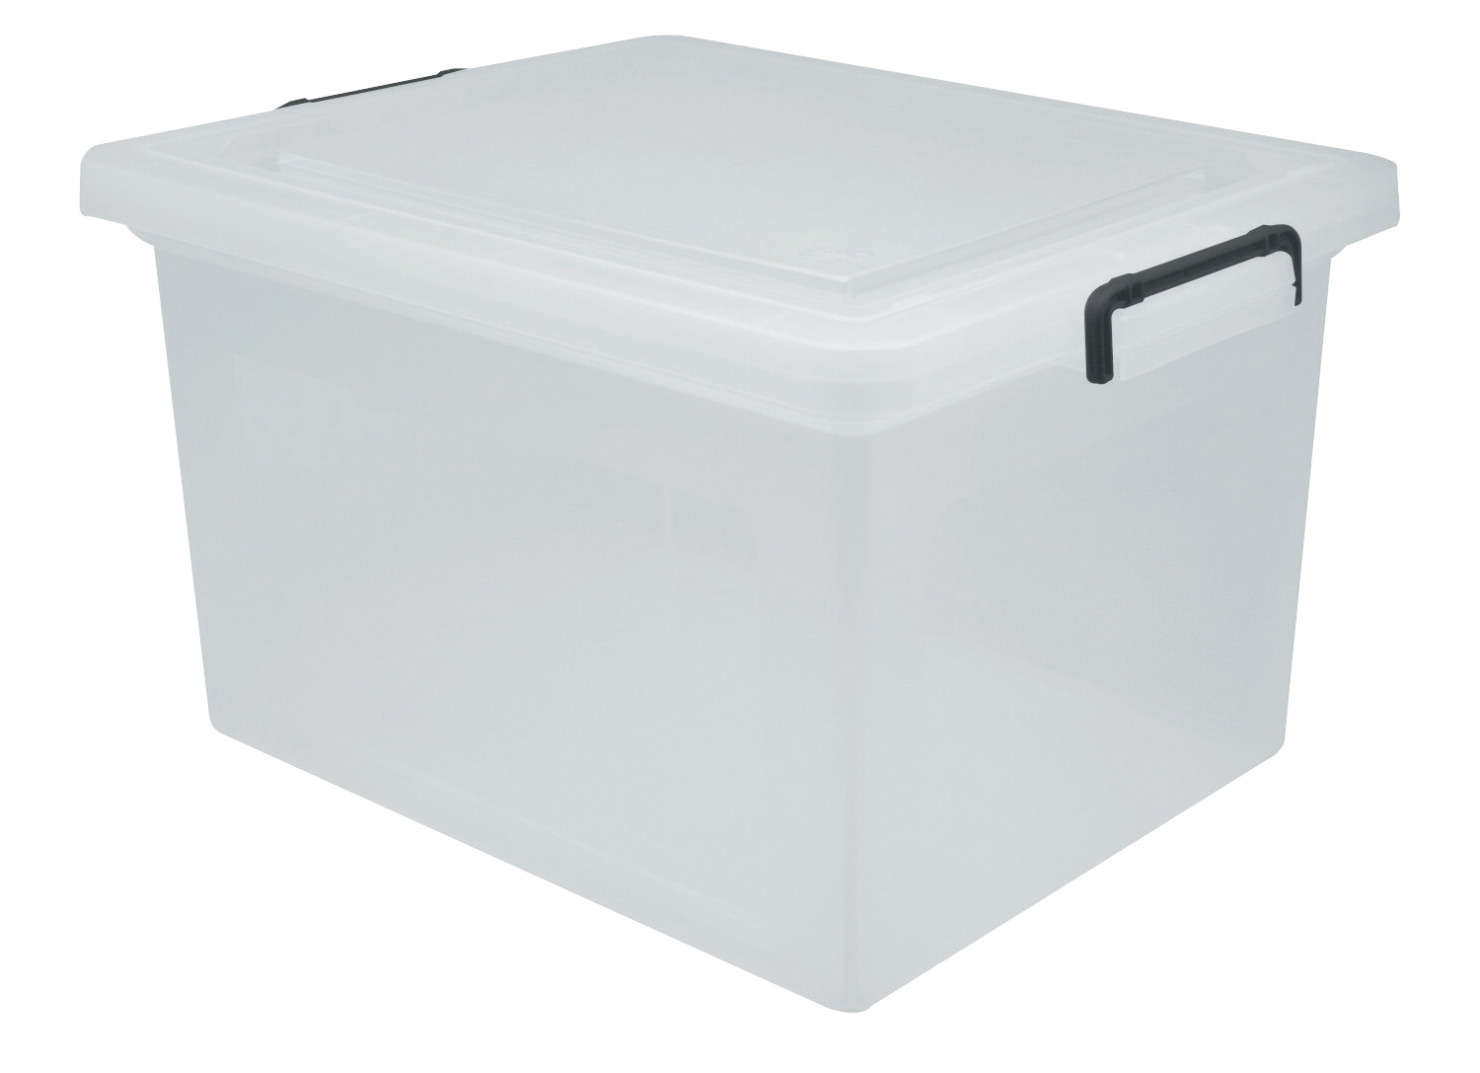 IRIS Buckled Letter/Legal Size File Storage Box, 36 Quarts, Clear/Black